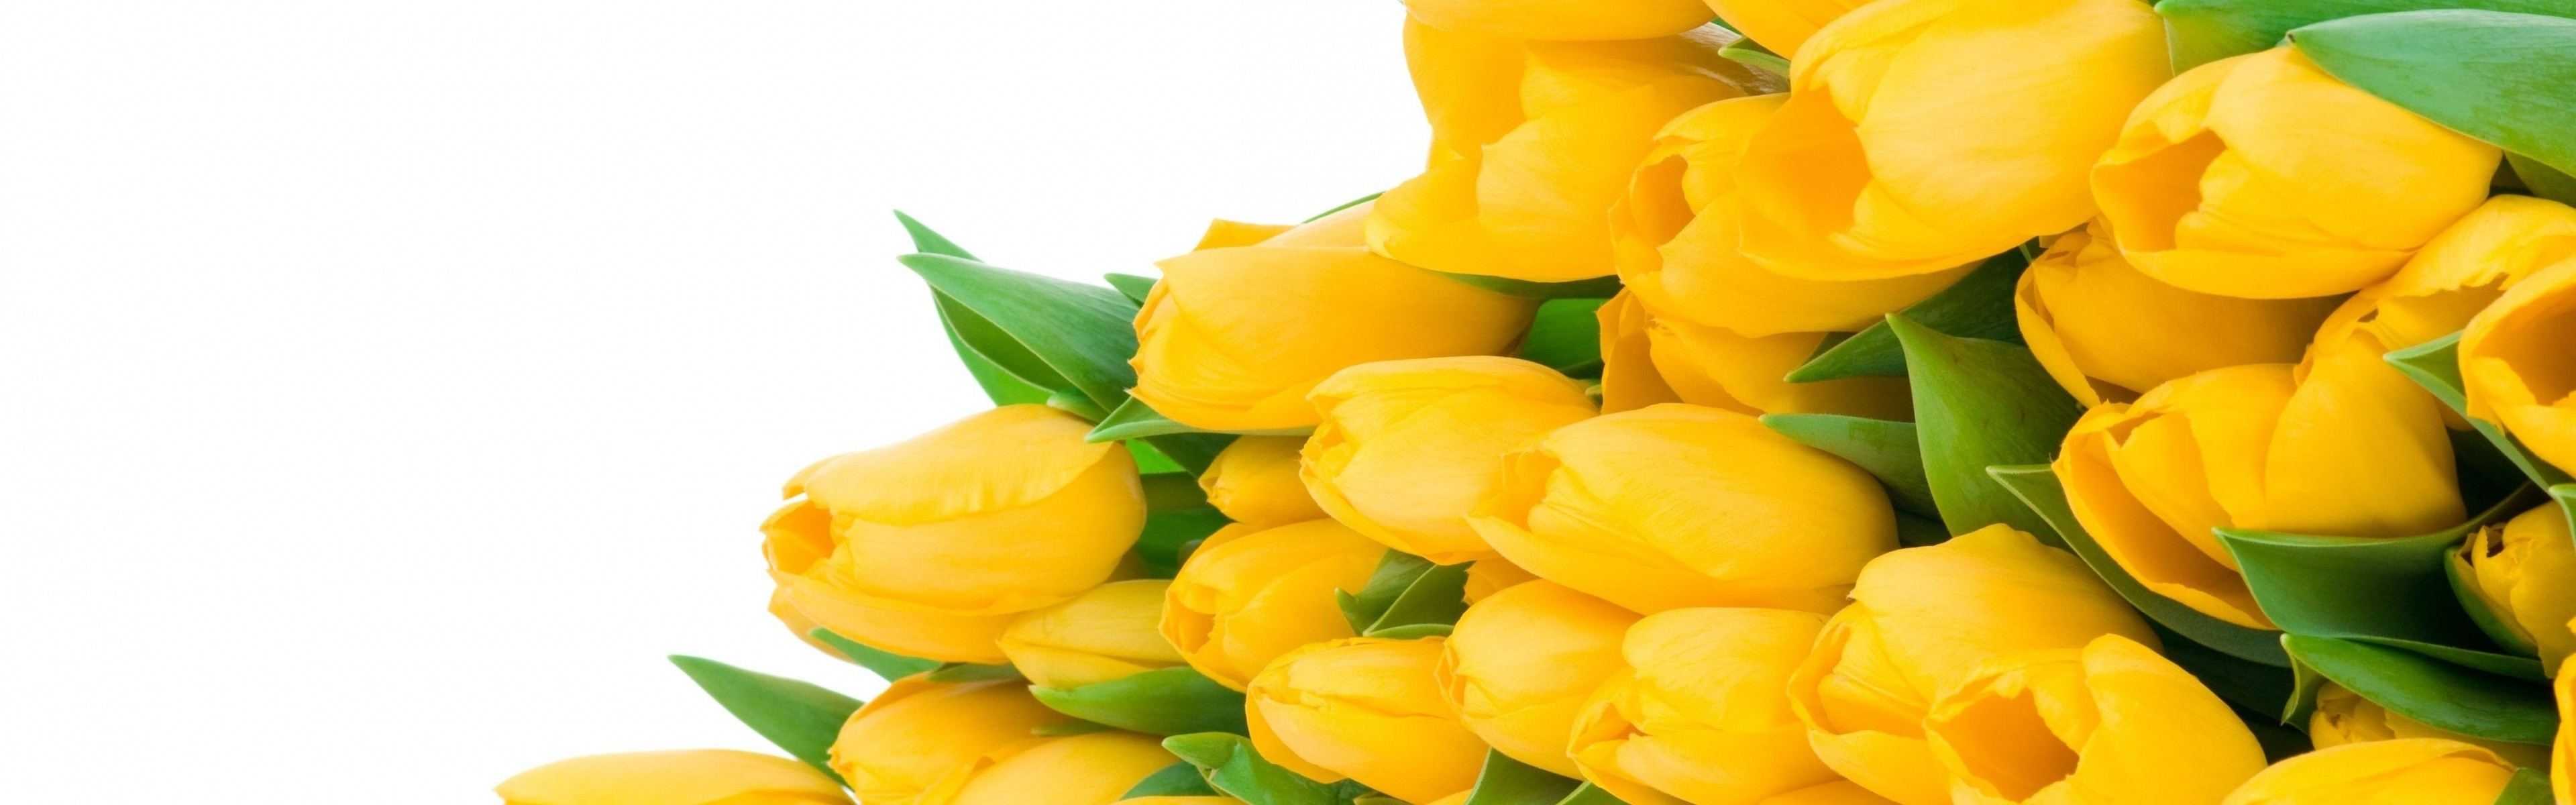 Wallpaper tulips, flowers, yellow, flower, lie, white background